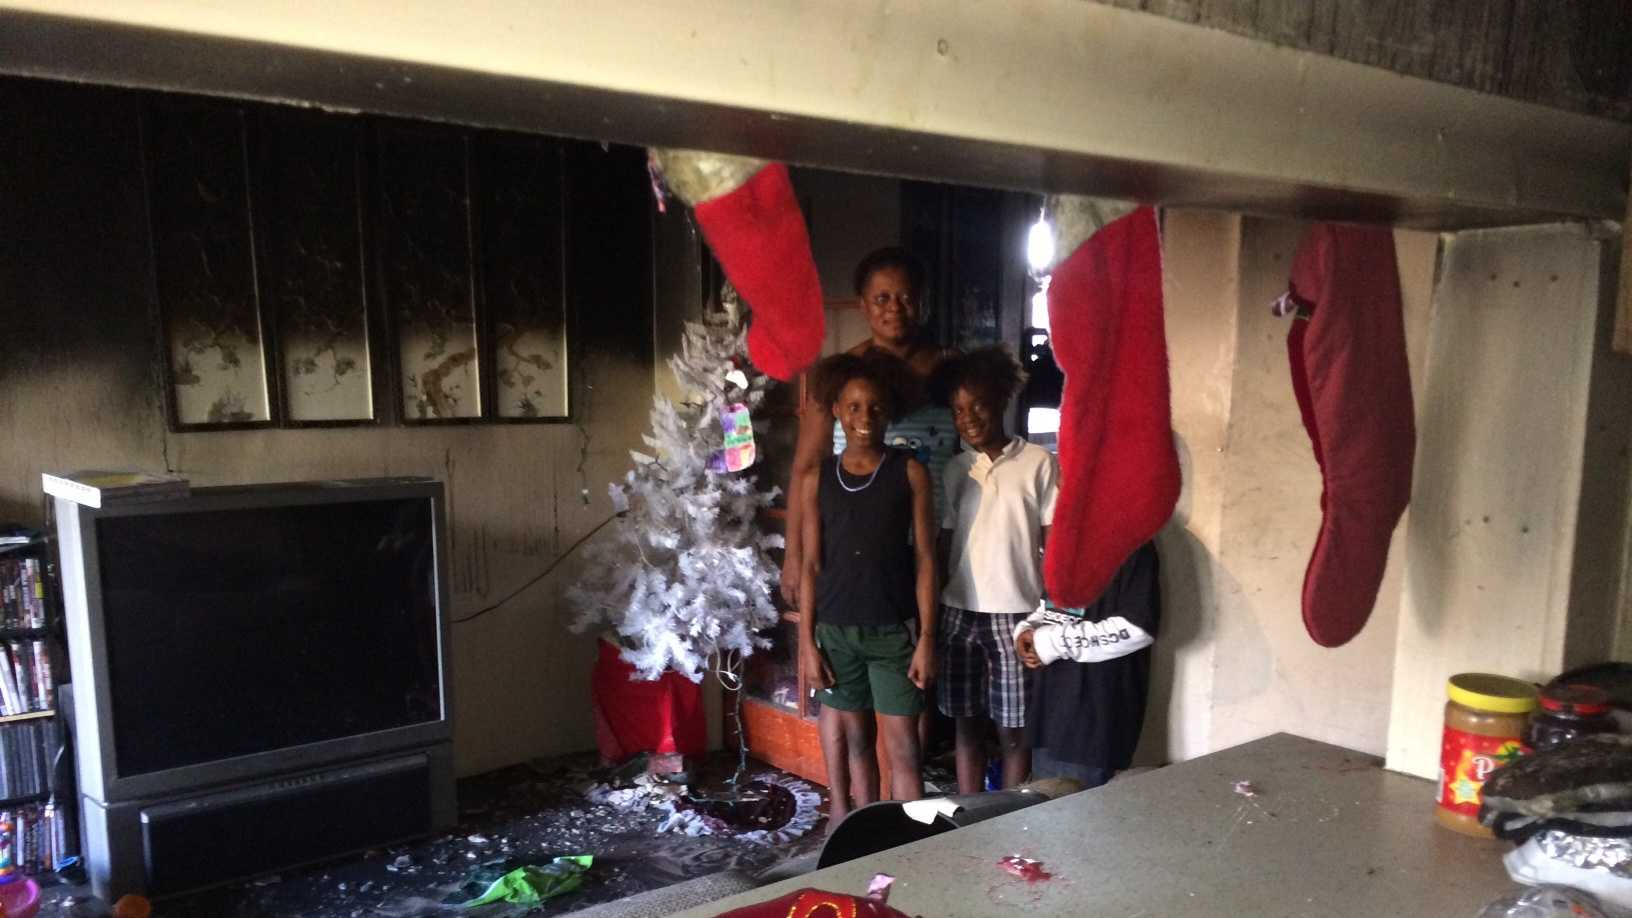 Demetrius Wynter and family in house that caught fire days before Christmas